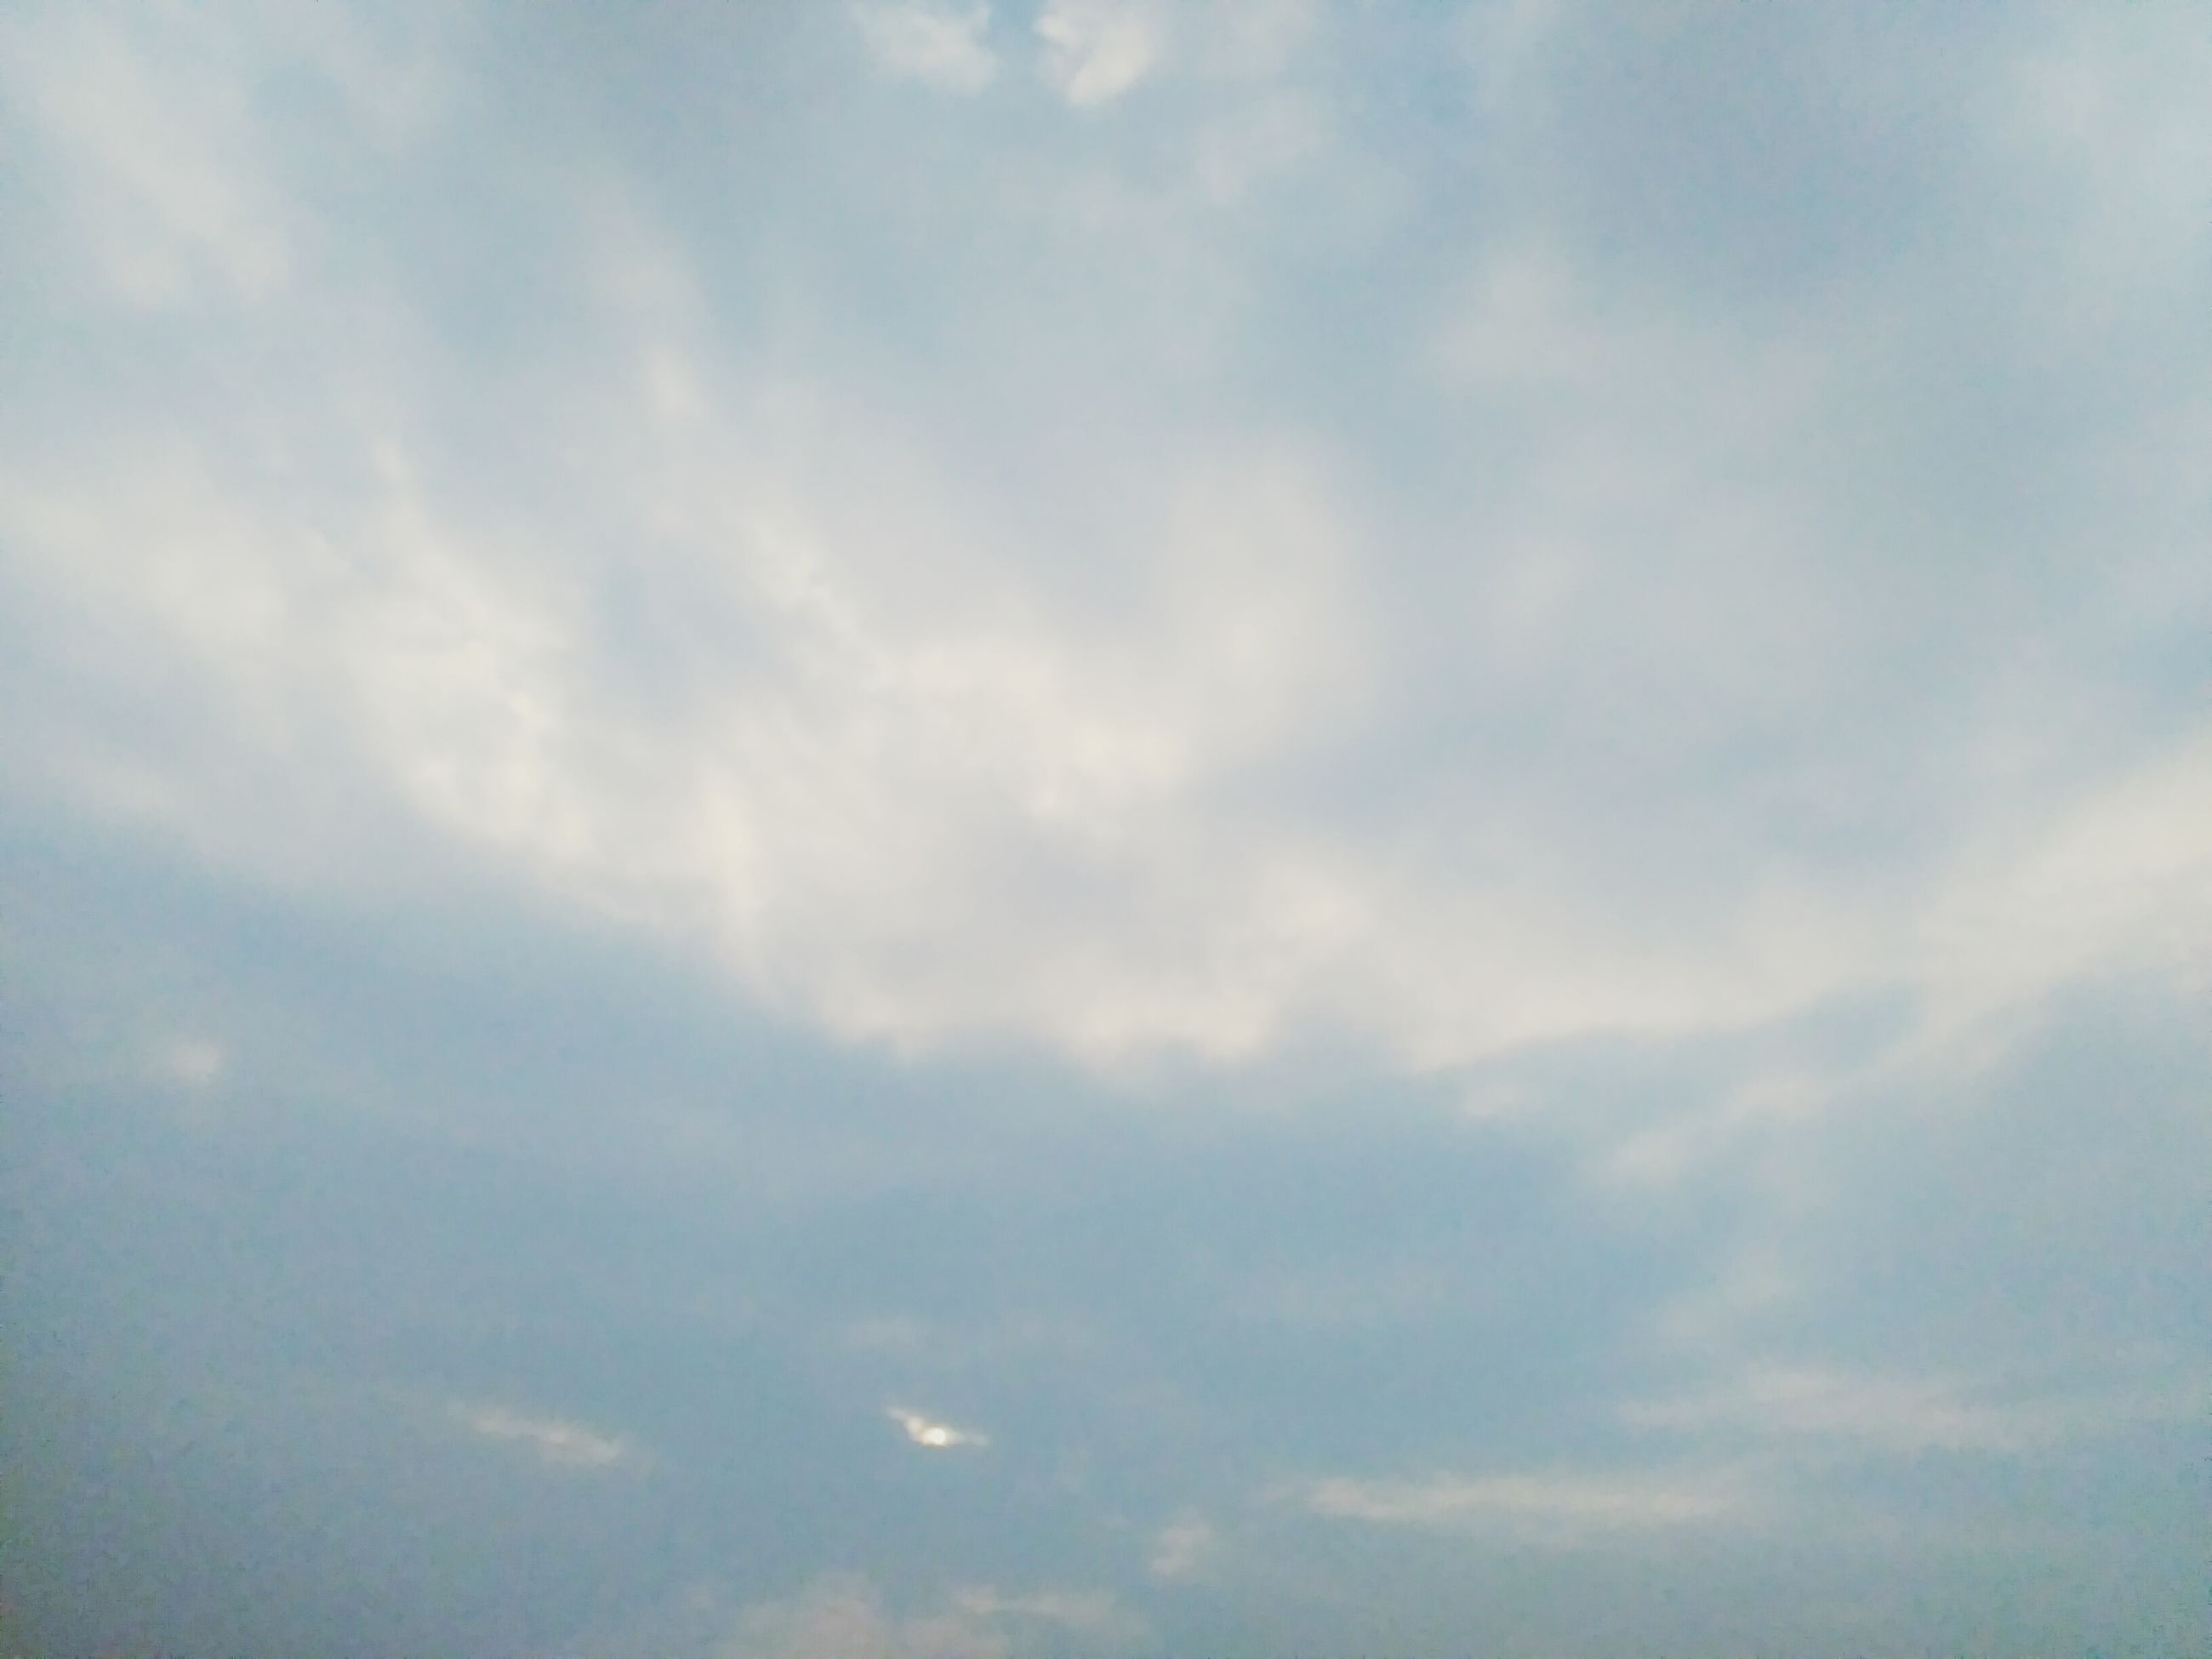 sky, backgrounds, nature, cloud - sky, low angle view, no people, tranquility, scenics, beauty in nature, day, outdoors